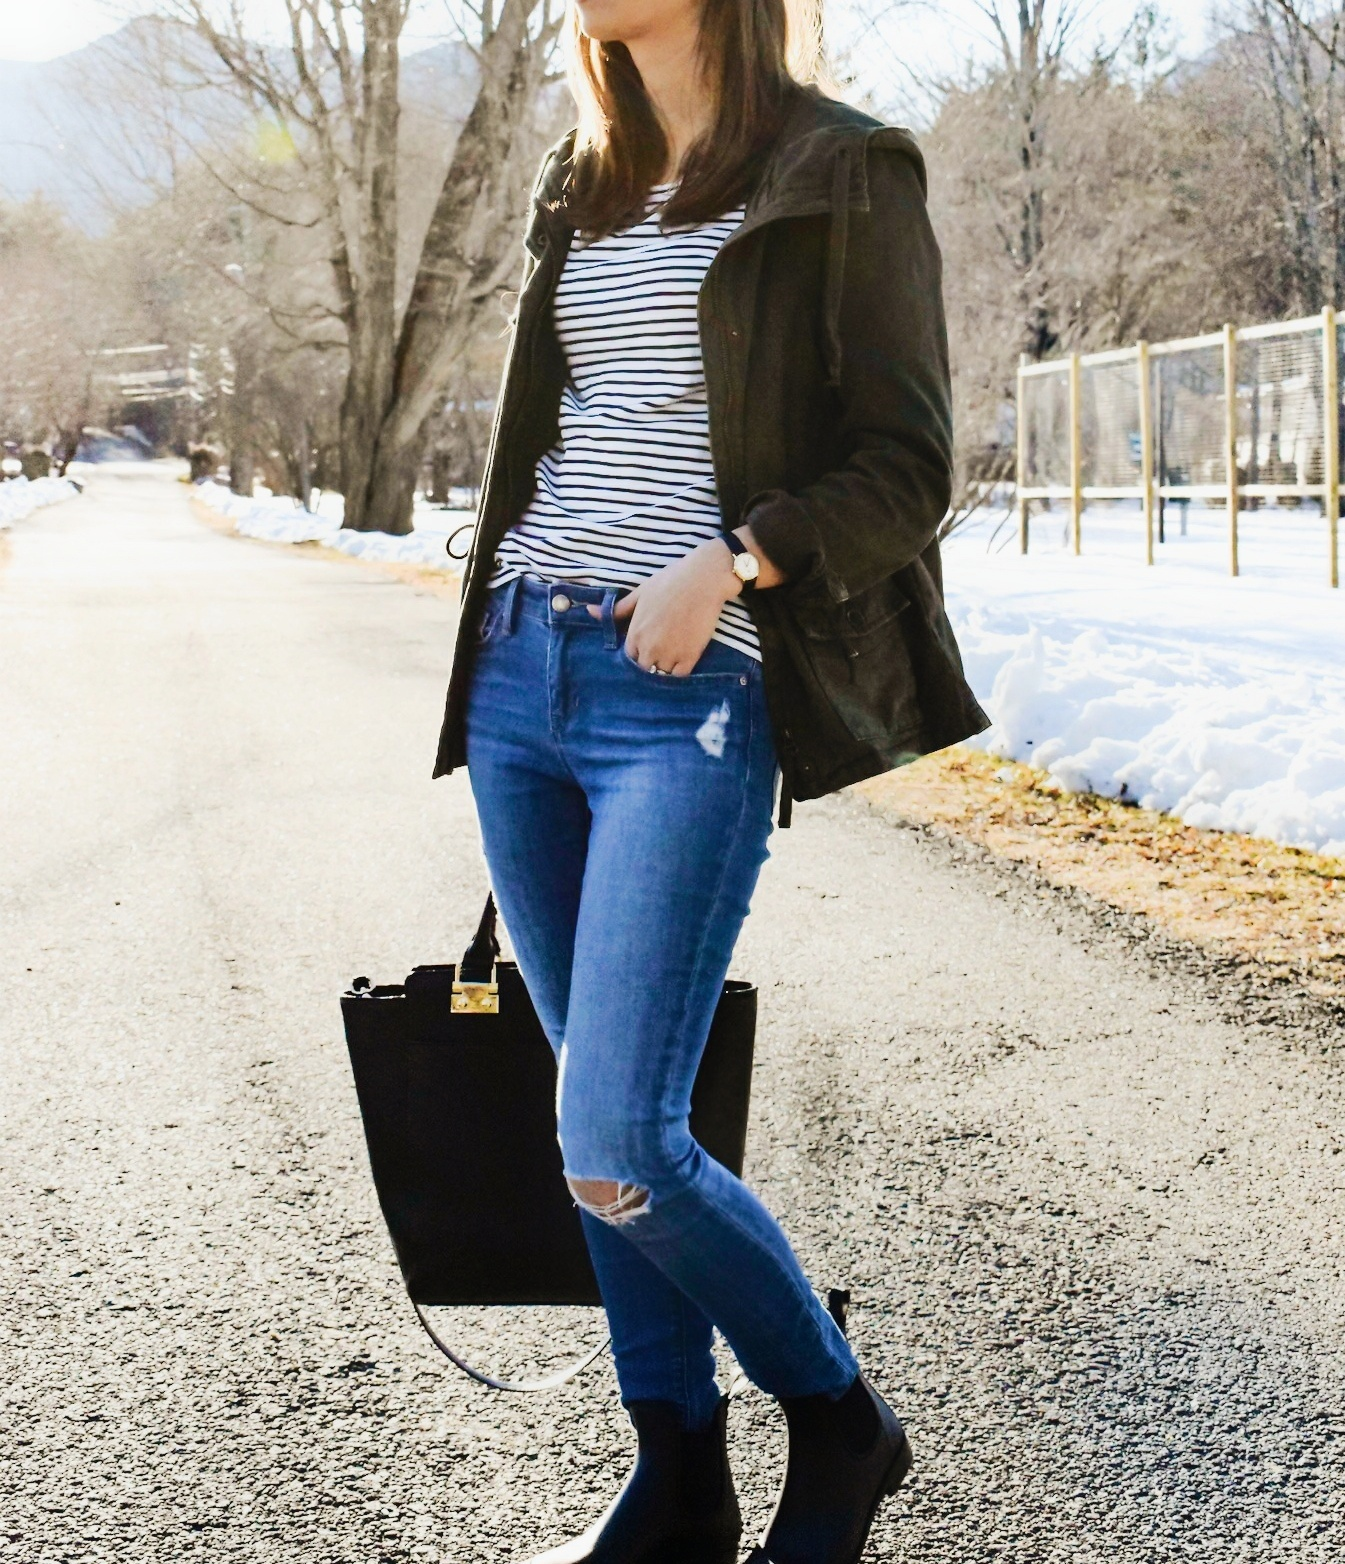 Wearing a green military jacket, striped shirt, distressed denim, Sam Edelman rain boots, and black tote